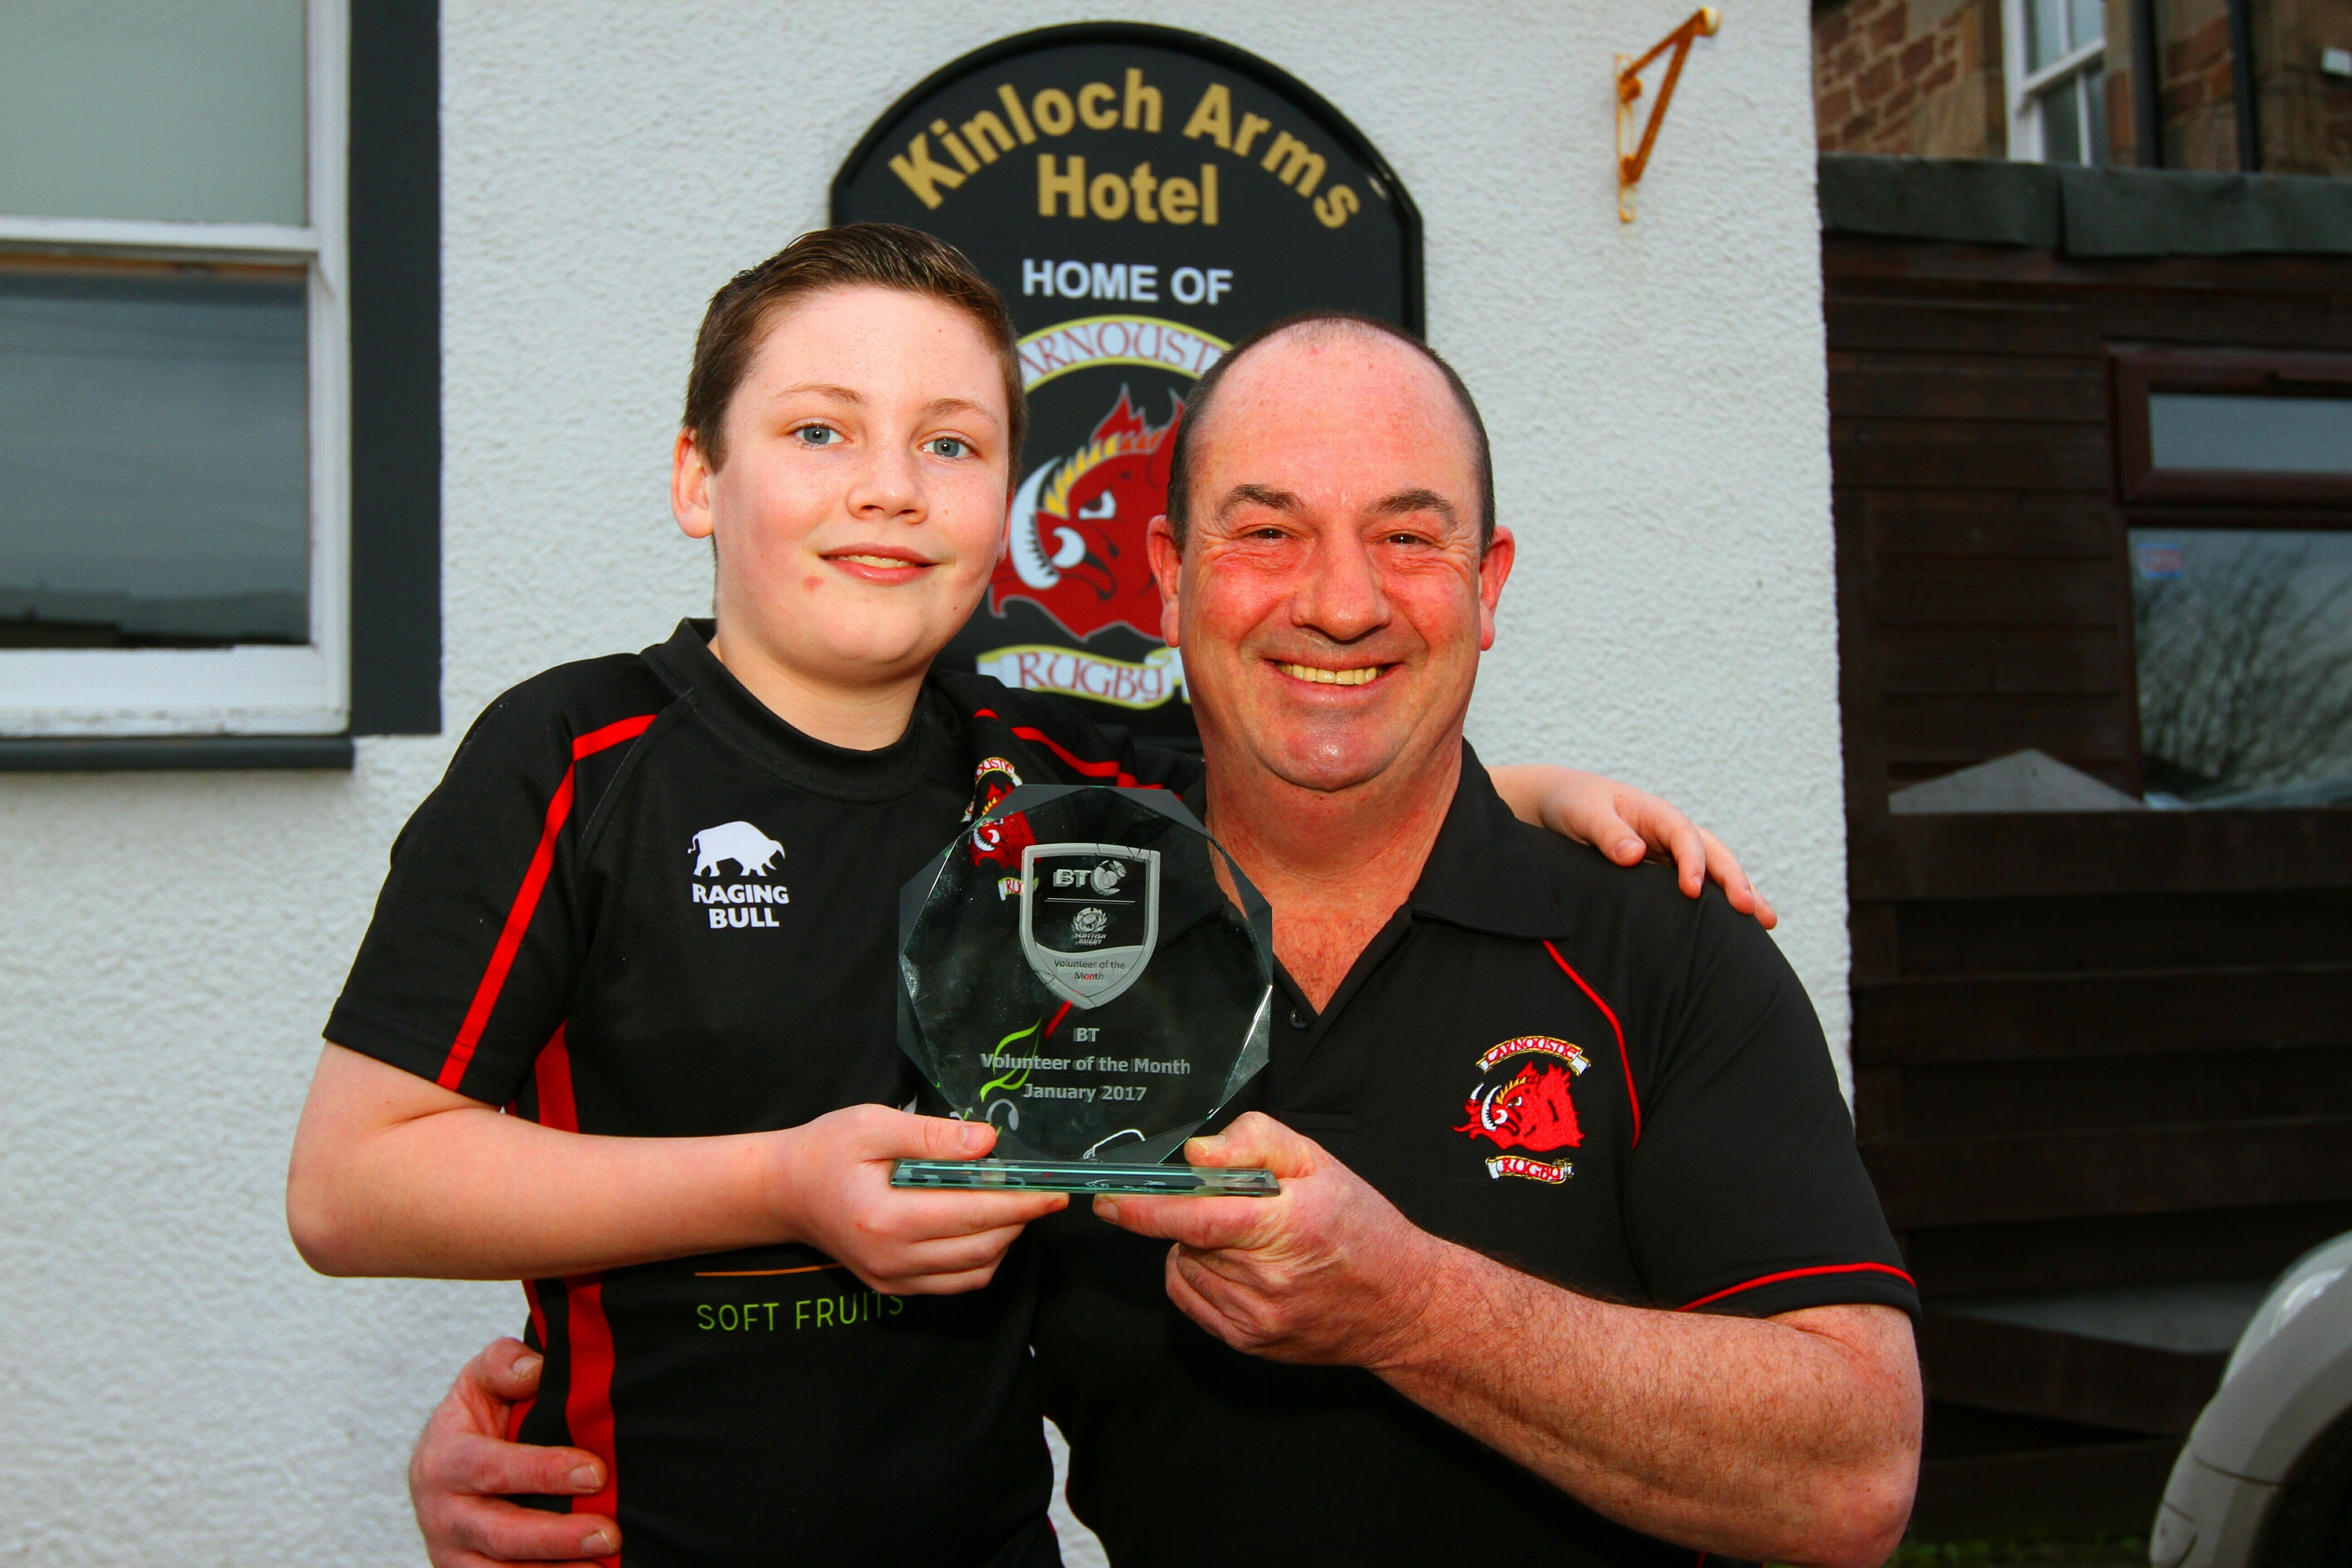 Scottish Rugby volunteer of the month award winner Calum Bruce of Carnoustie Rugby Club and his son Brandon as the club prepares for the June anniversary event